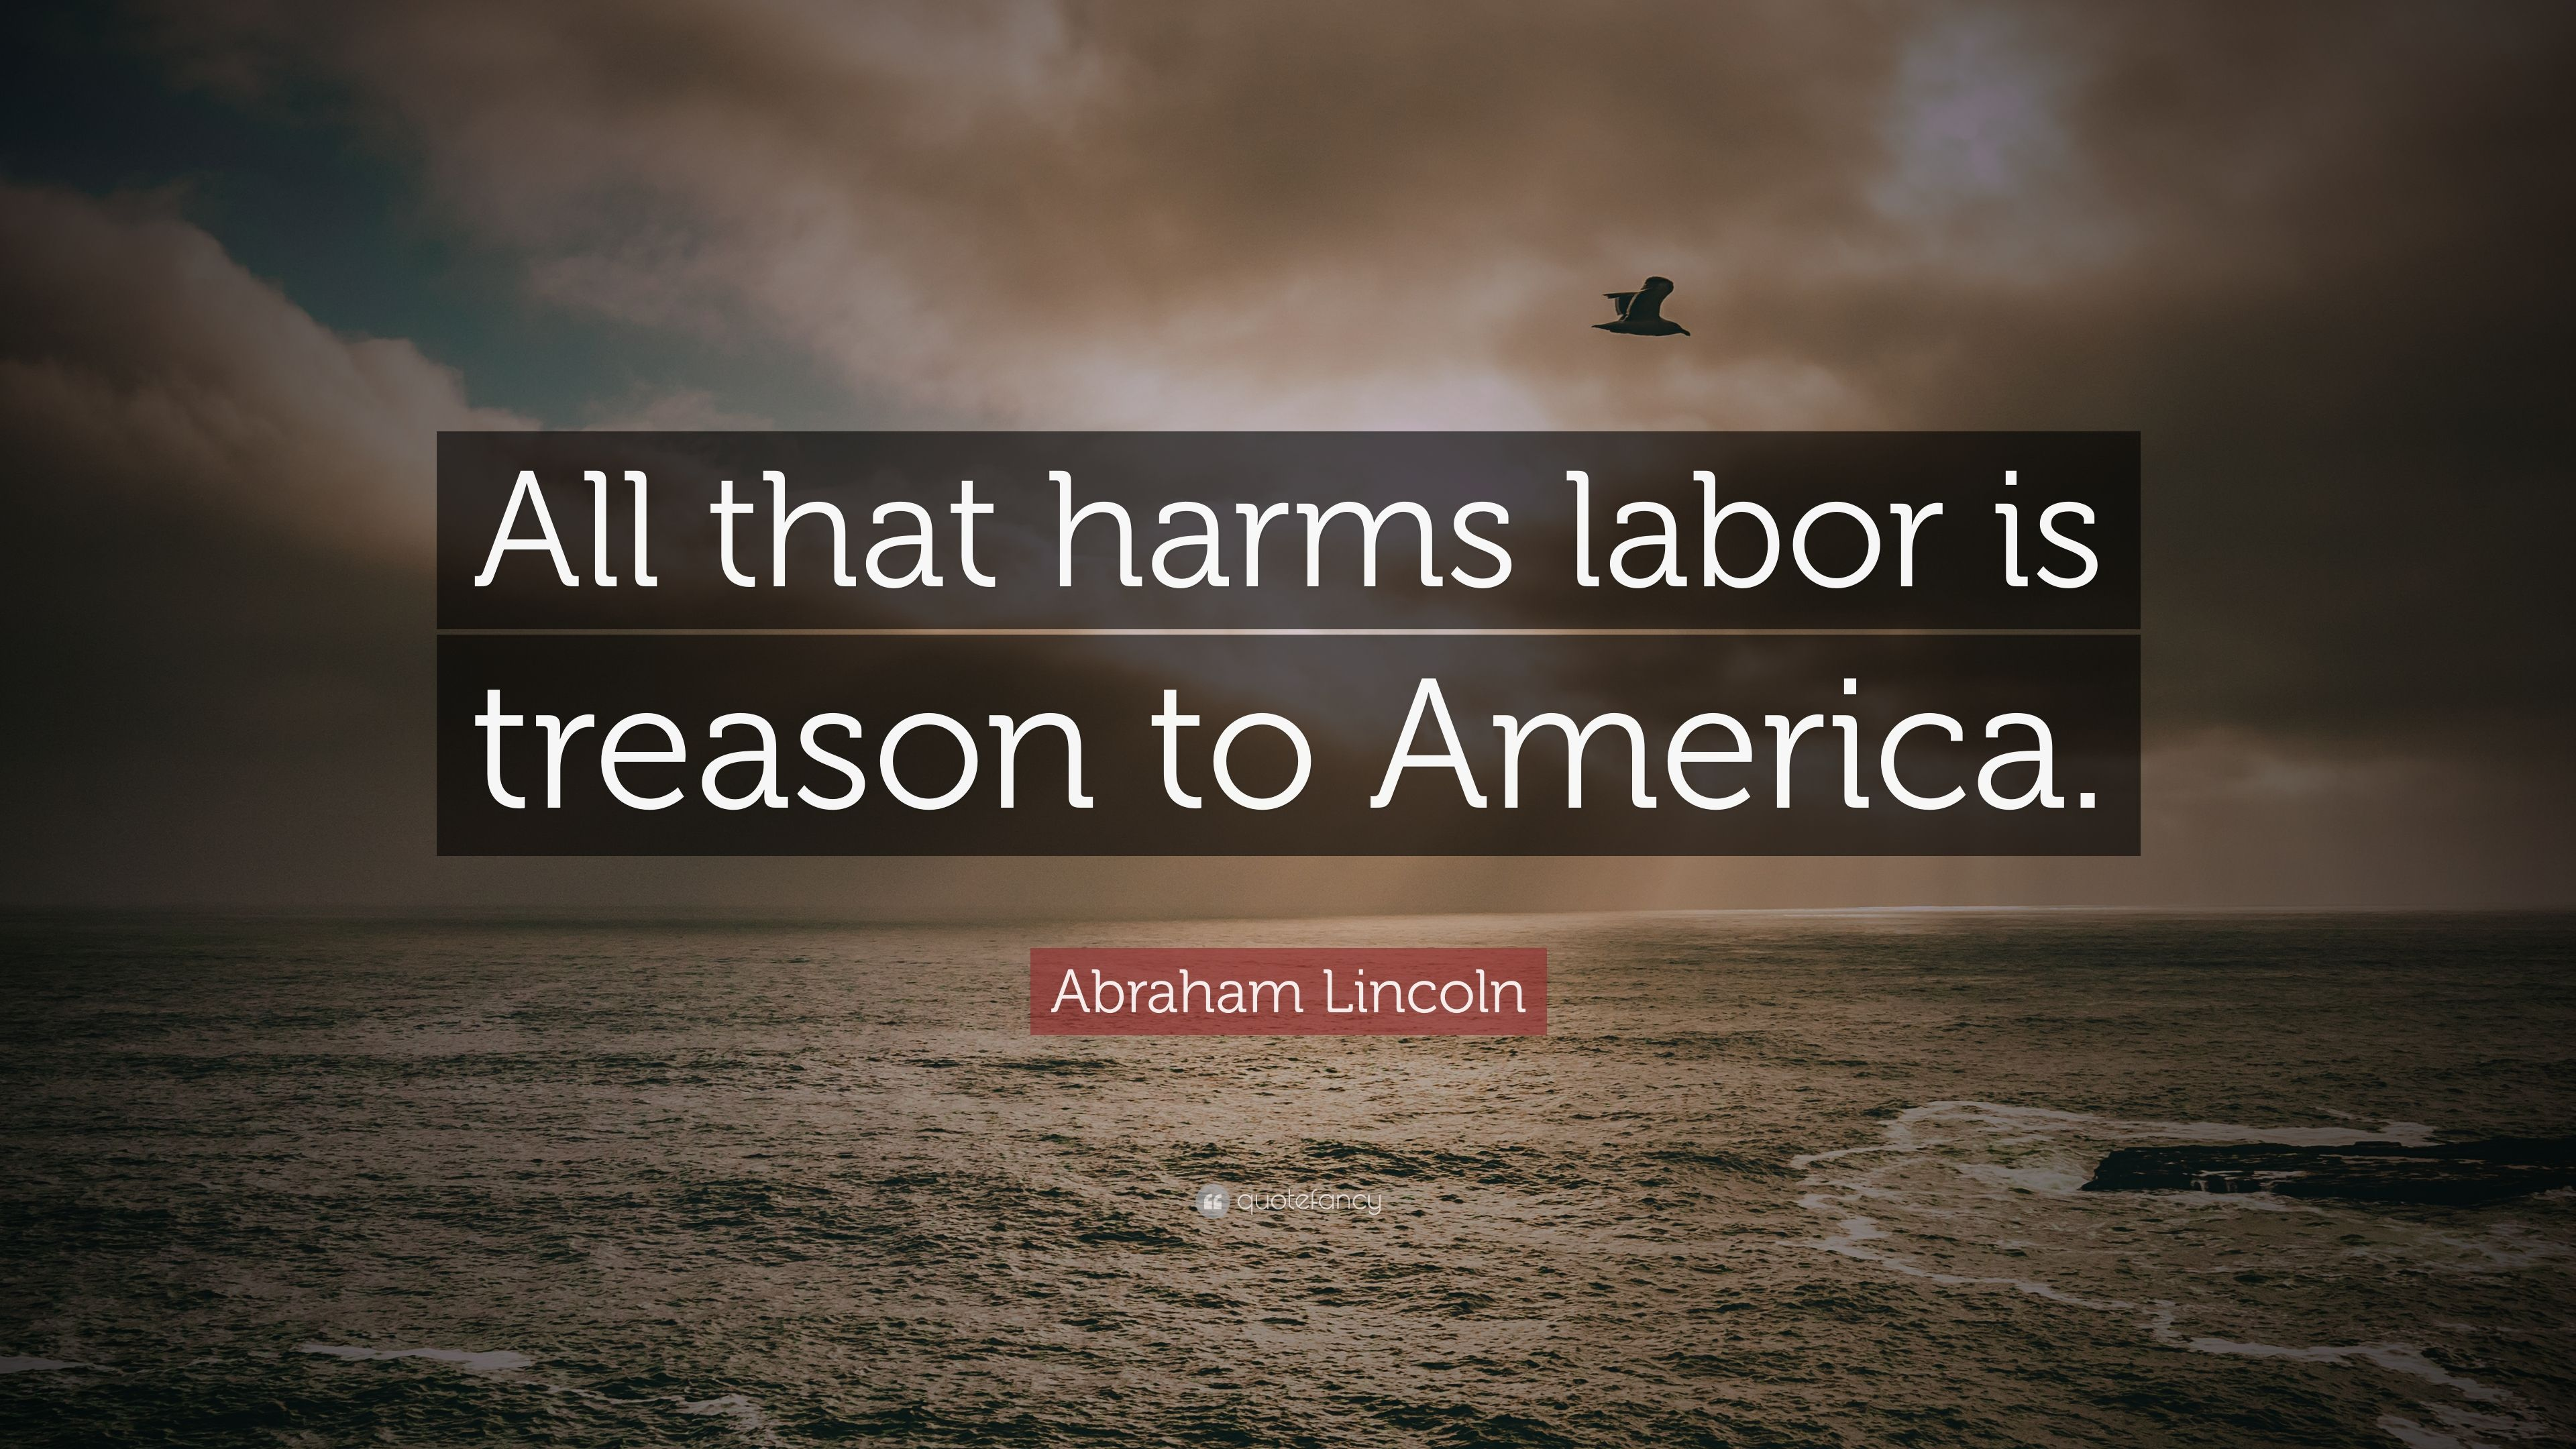 Abraham Lincoln Quote All That Harms Labor Is Treason To America